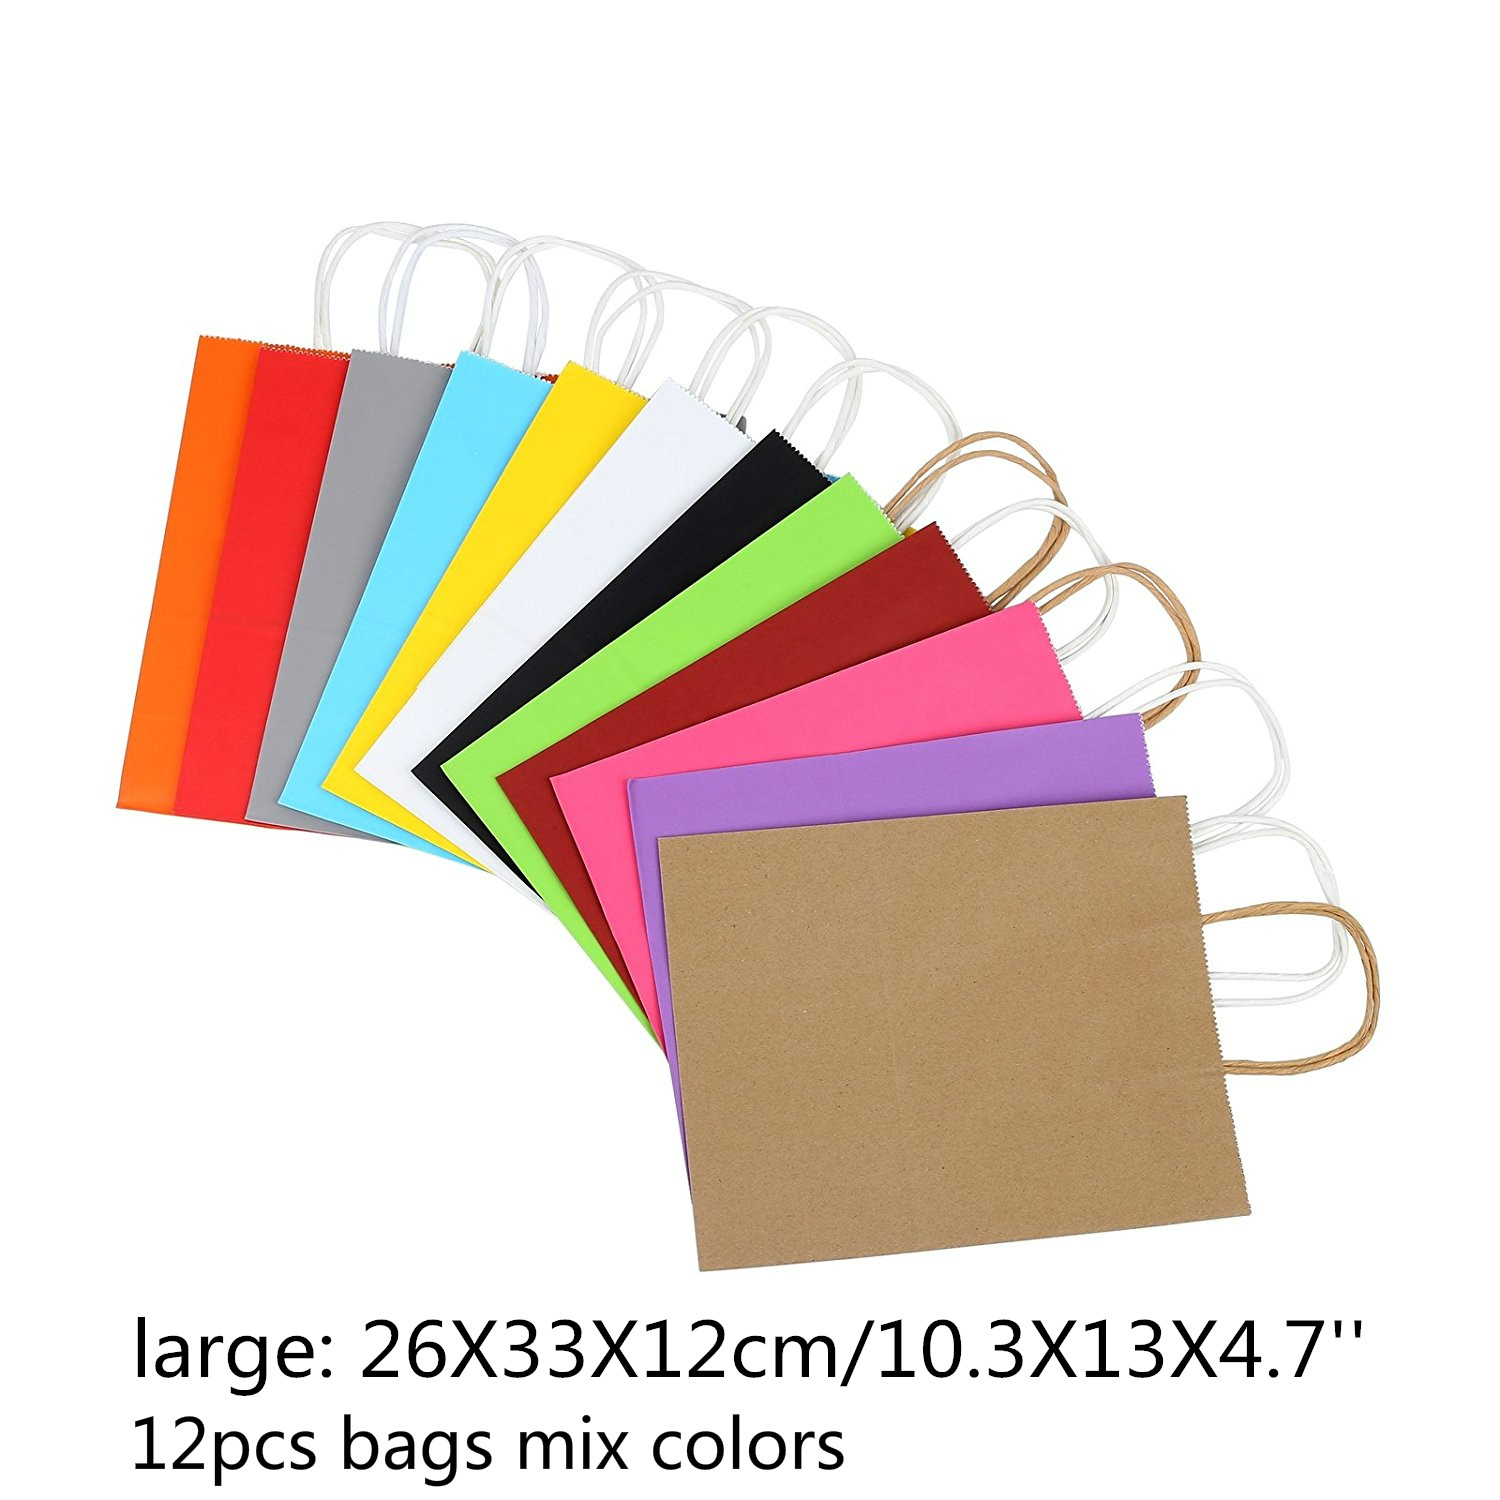 Rainbow Kraft Plain Paper Bags 12pcs With Handle 10.3X13X4.7'' Reusable Merchandise Retail Bags Craft Gift Bags Party Favors Goody Bag (large)